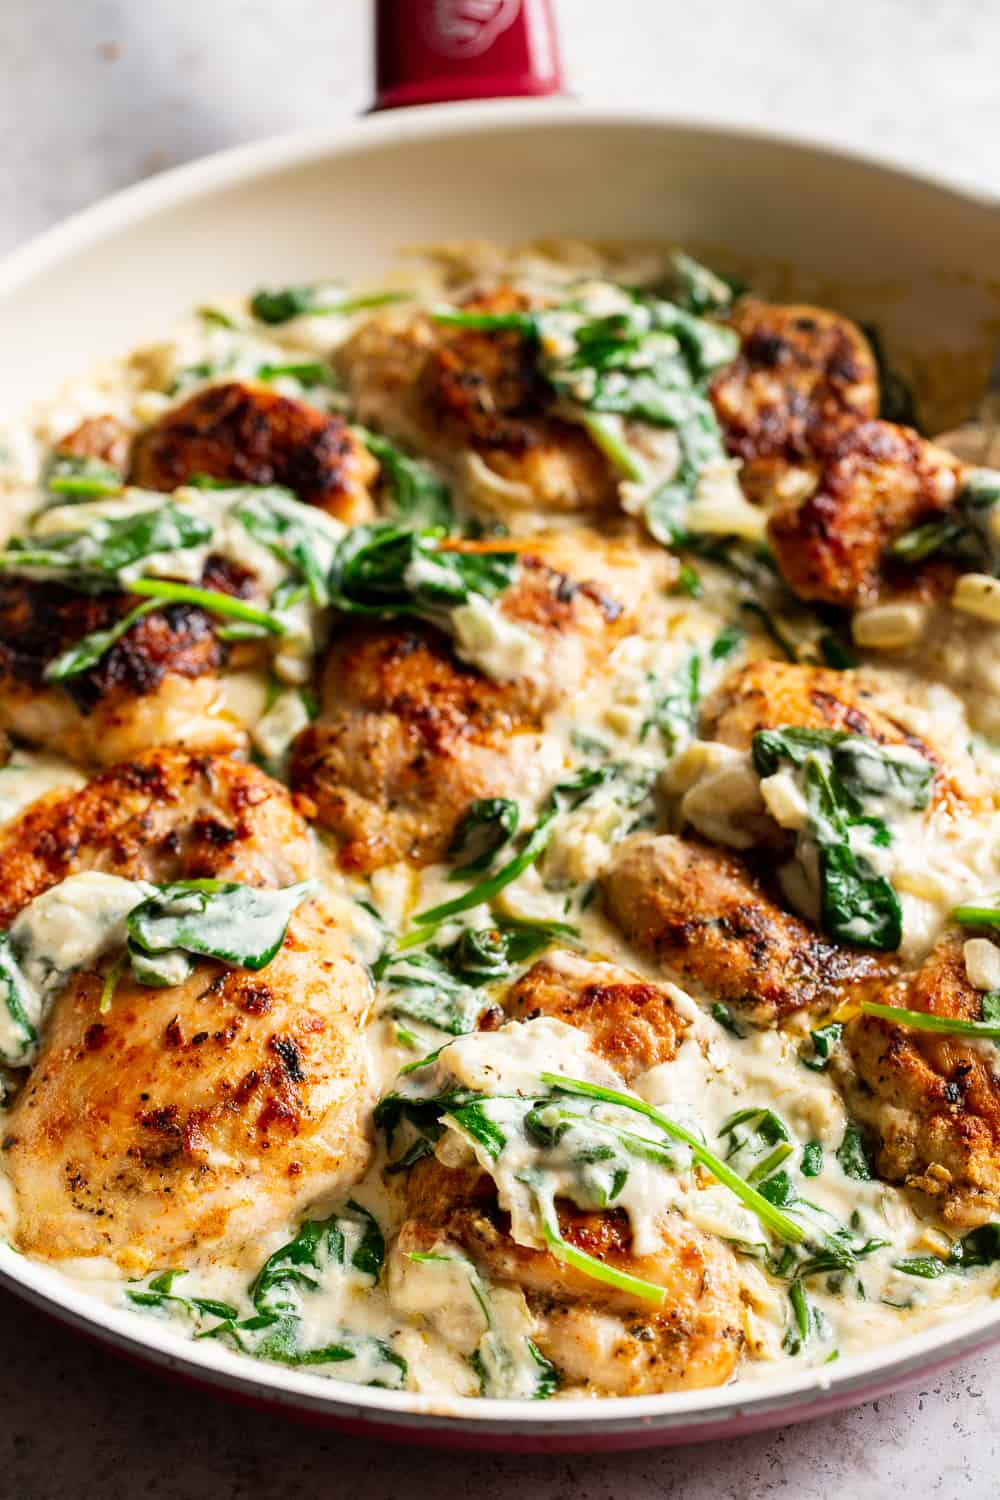 """This one pot creamed spinach chicken is paleo, Whole30 friendly and dairy free but you'd never guess! Juicy seasoned chicken is cooked in one skillet with a creamy, """"cheesy"""" sauce and spinach that's easy and great for weeknights! The leftovers are perfect for lunch the next day too. #paleo #whole30 #keto #cleaneating"""